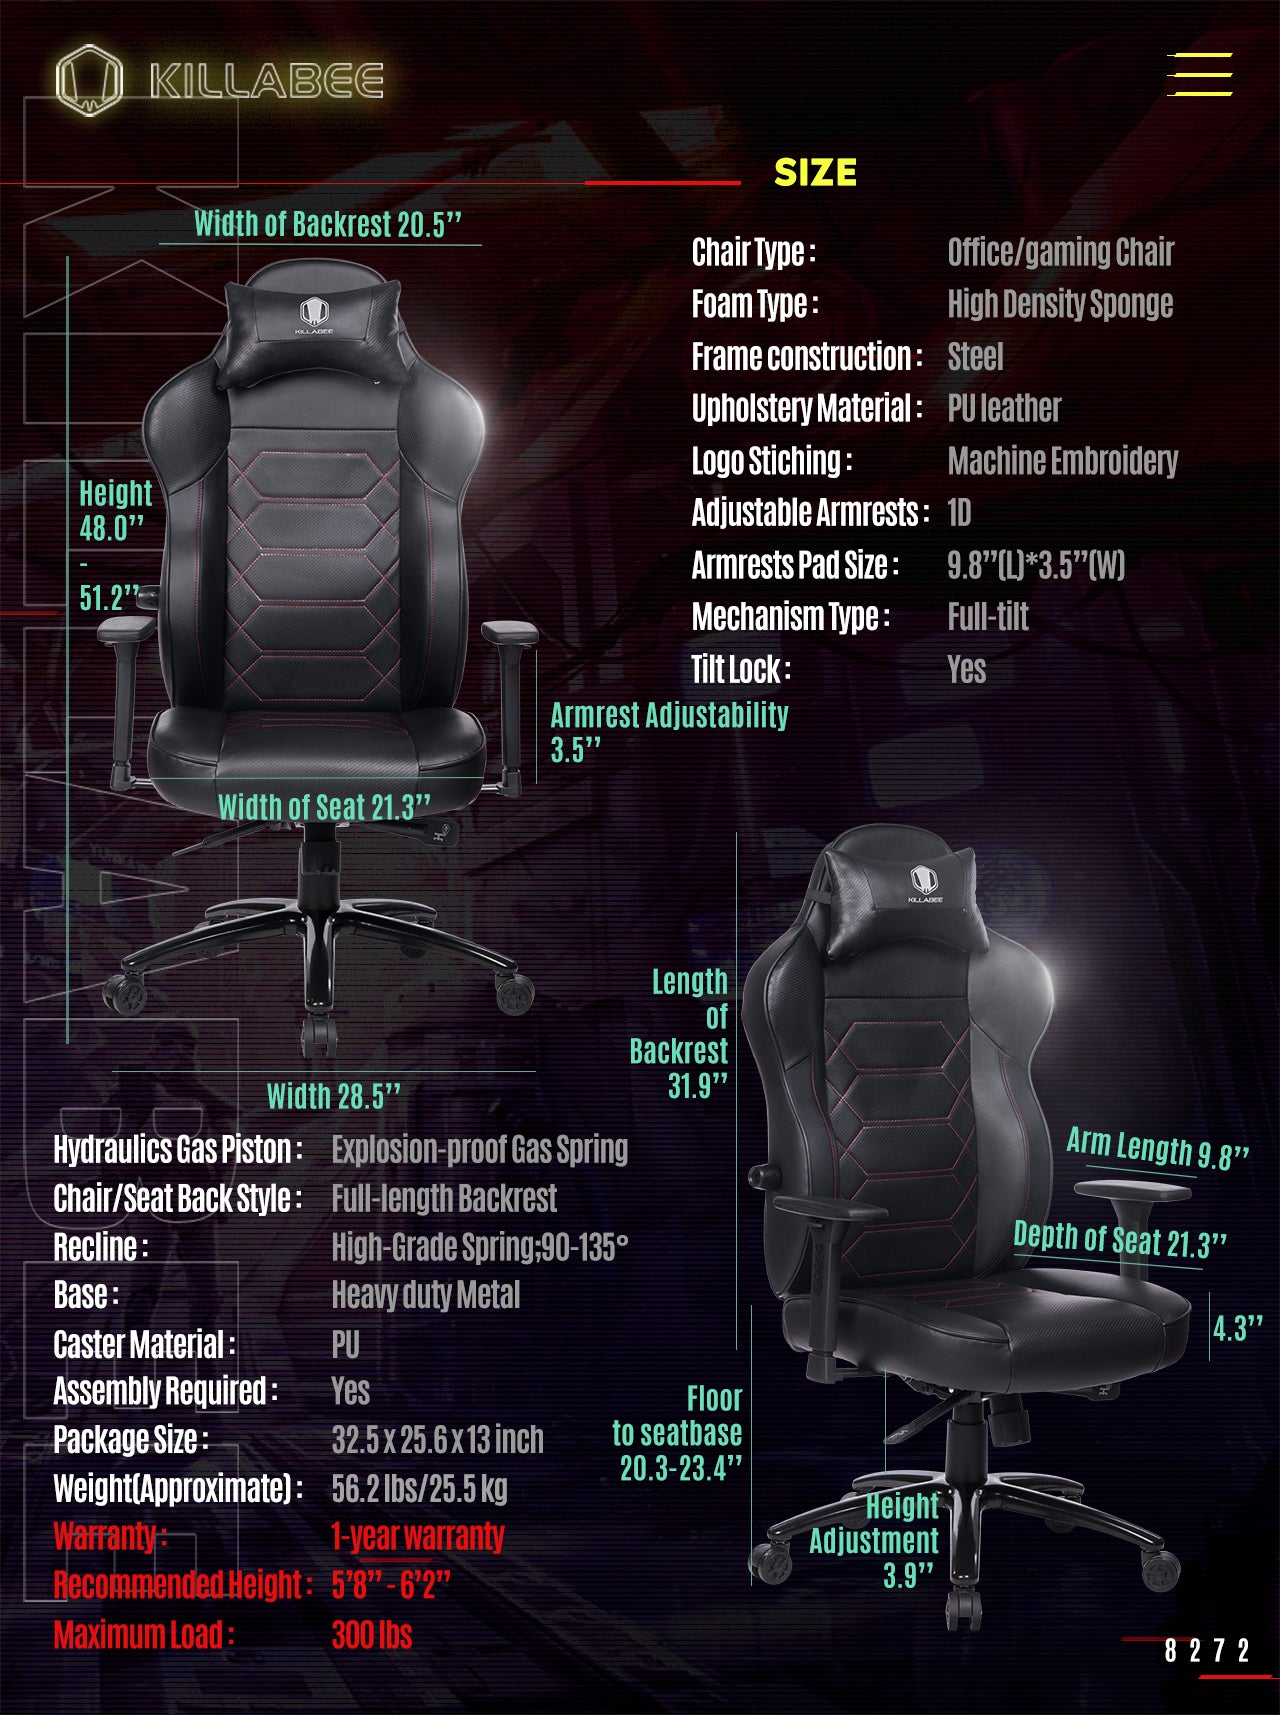 KILLABEE ERGONOMIC GAMING CHAIR 8272 BLACK SPECIFICATION